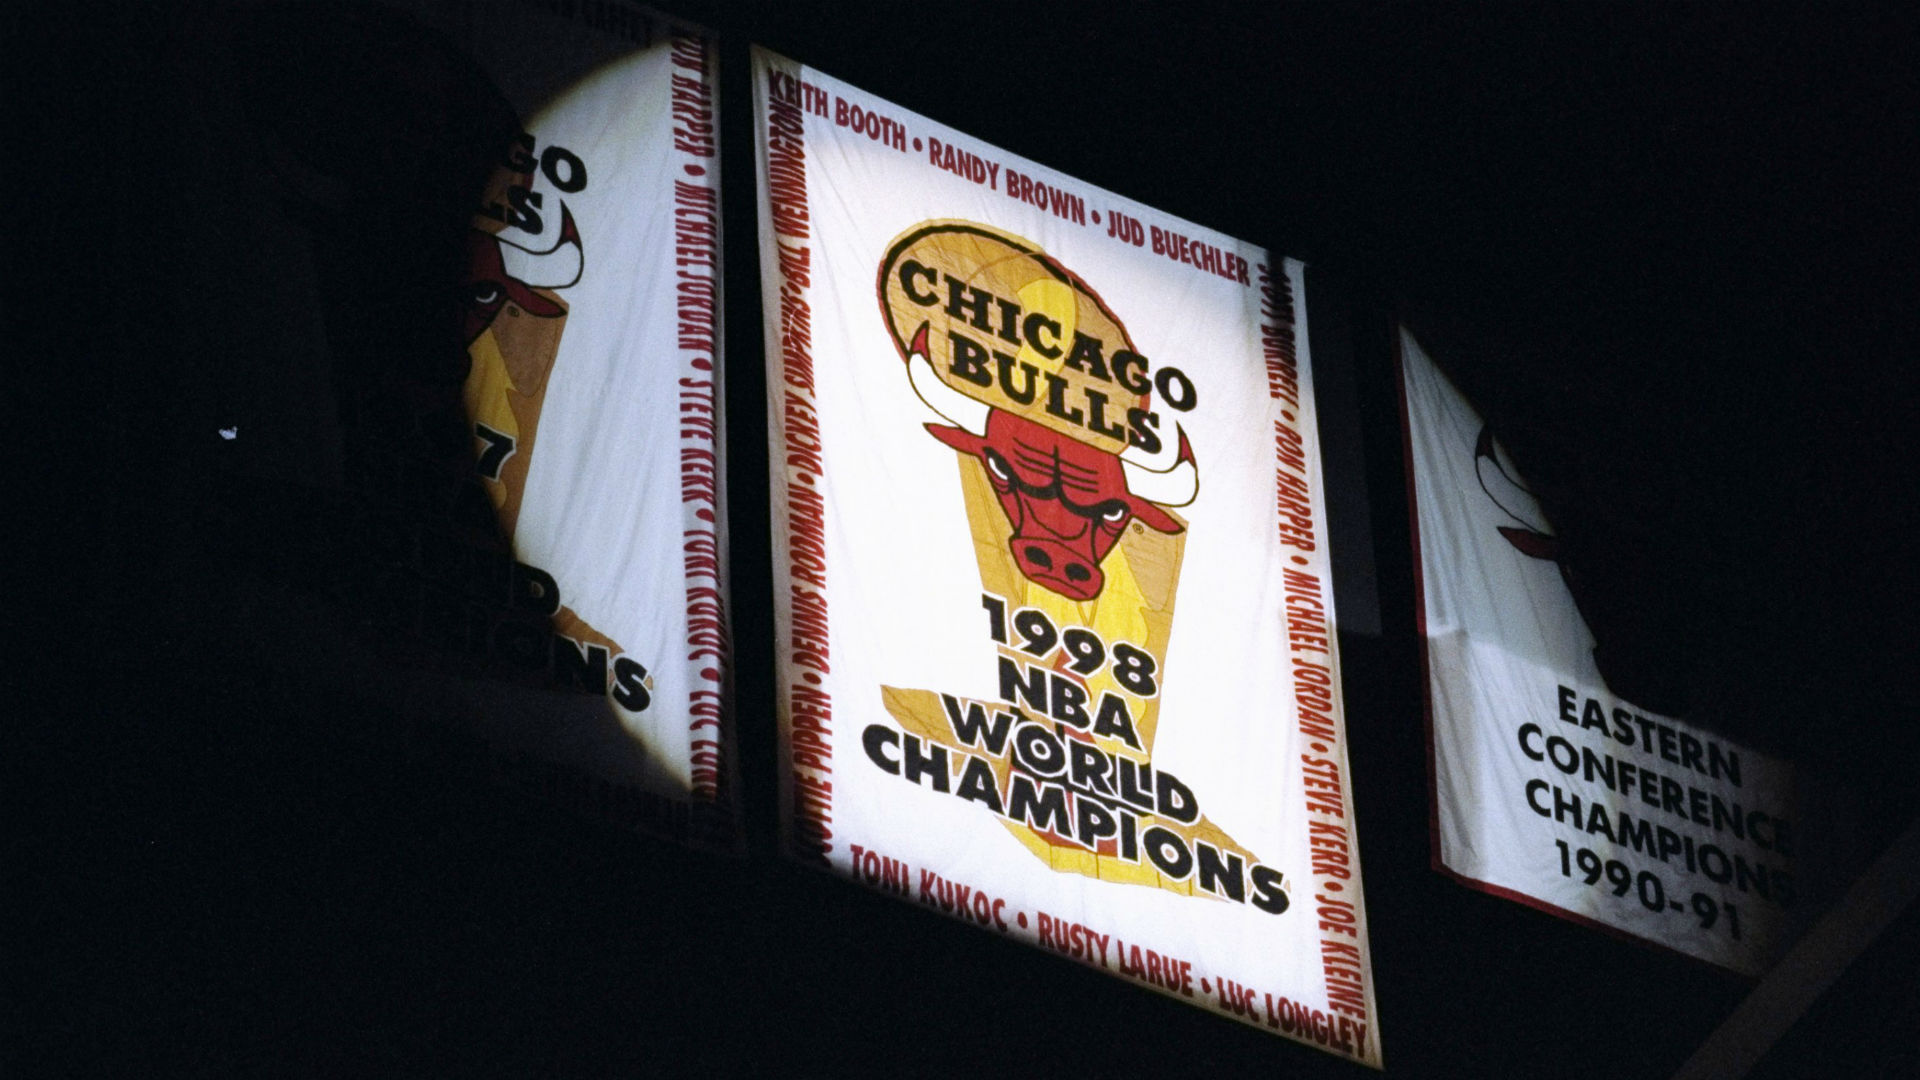 Last Dance Bulls would 'win championships in any era', says ex-Chicago guard